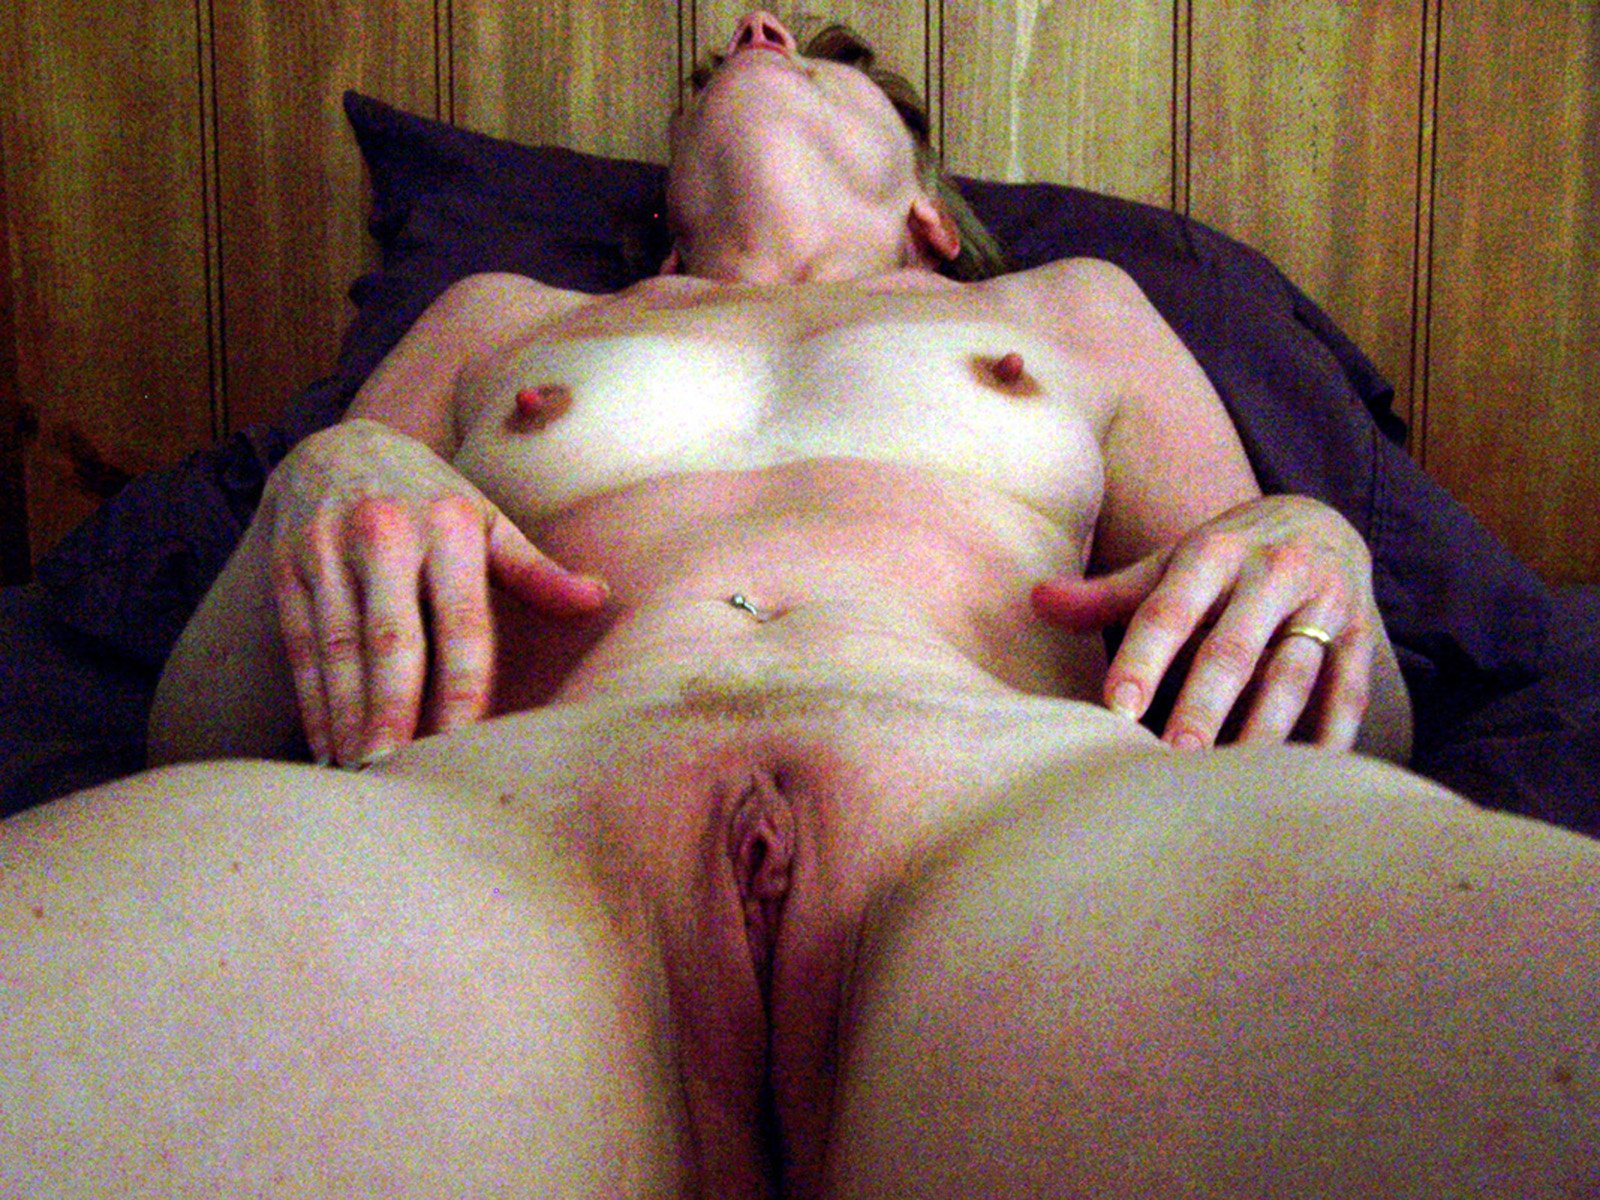 real amateur swinger videos